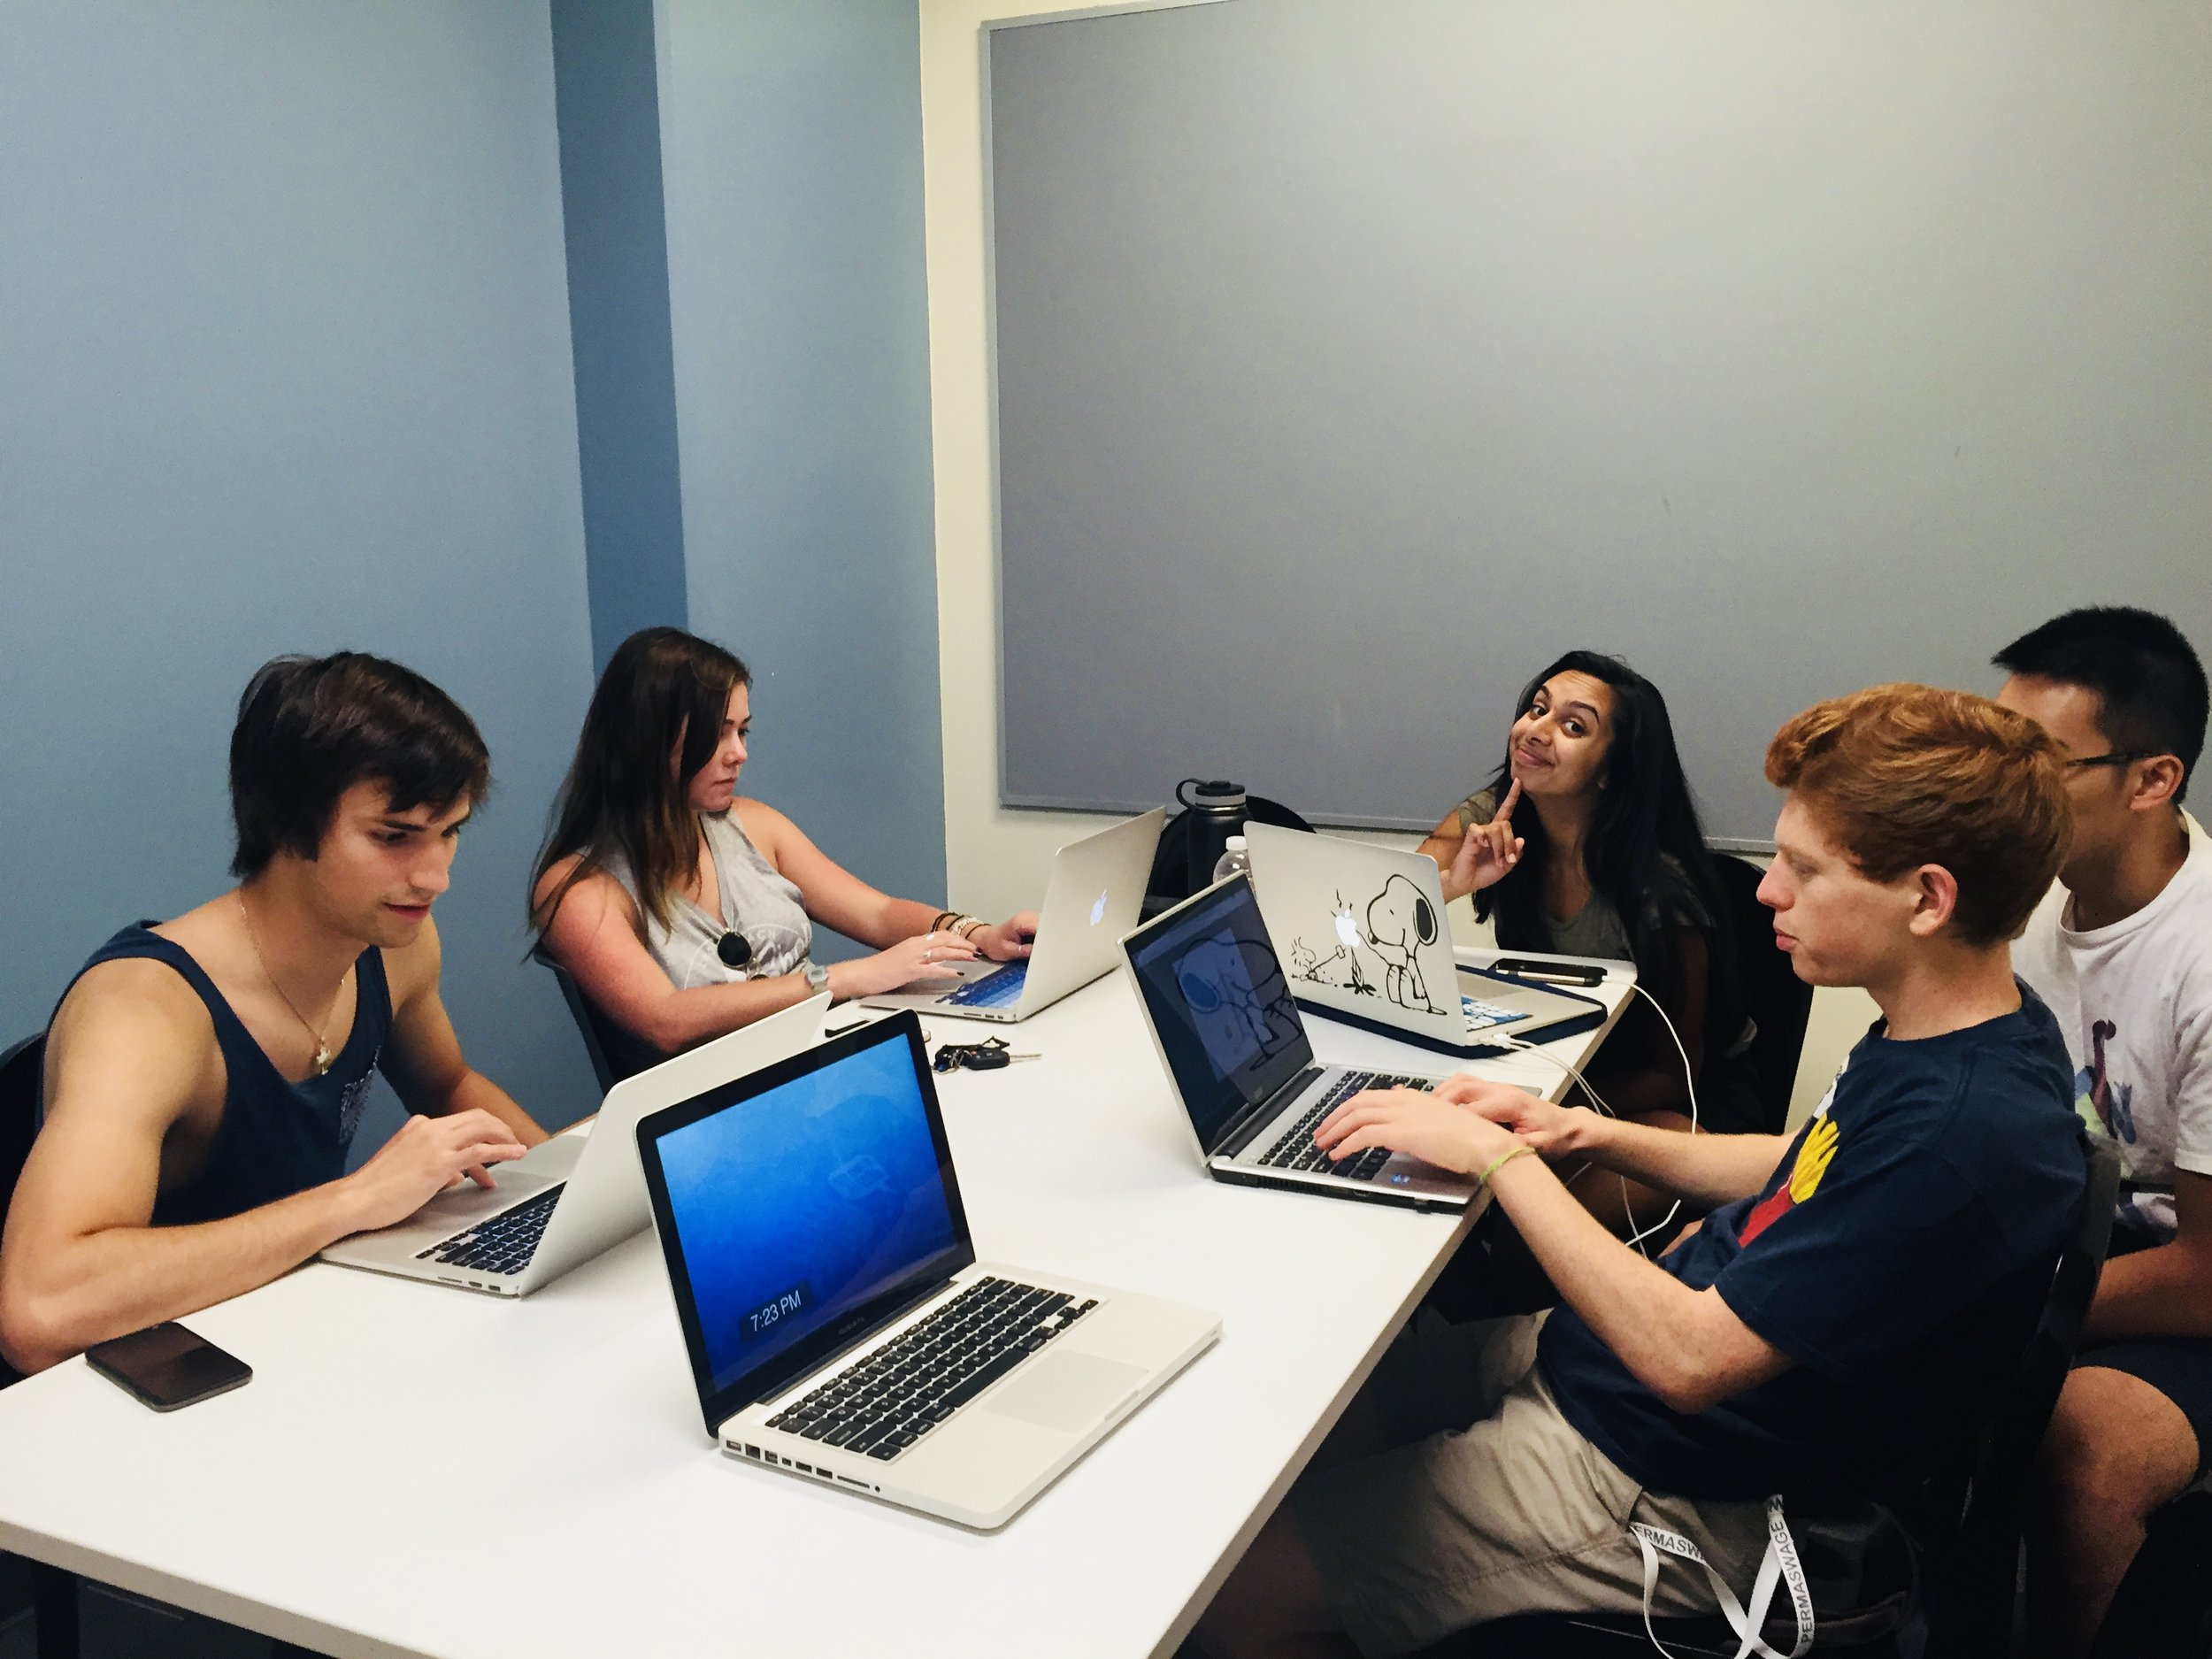 Students meeting on campus during a project meeting.